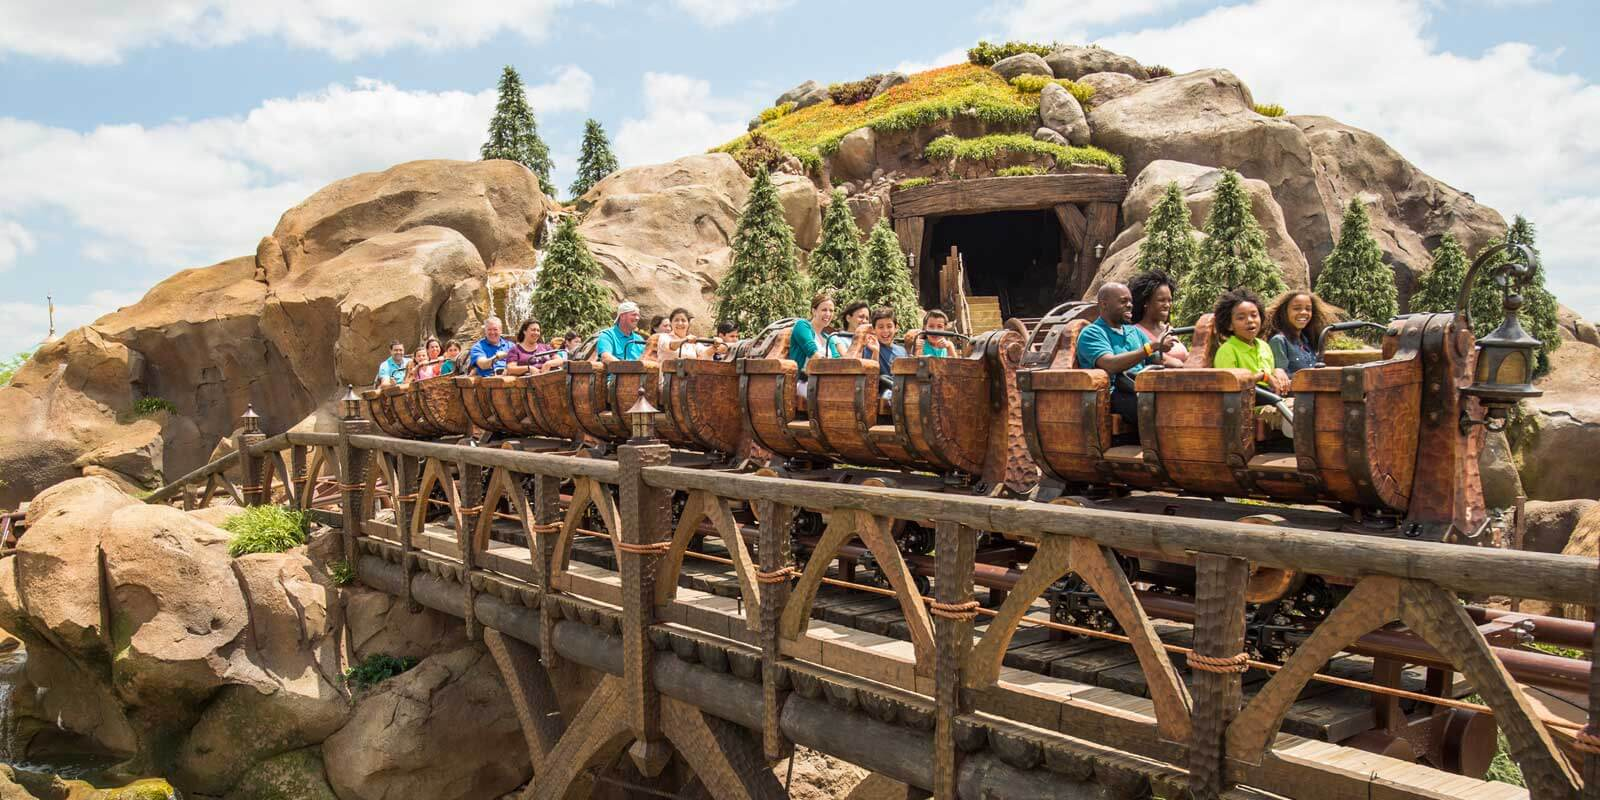 Get Fastpasses for Disney World BEFORE your trip. Here's my Disney World Fastpass tips for adults.